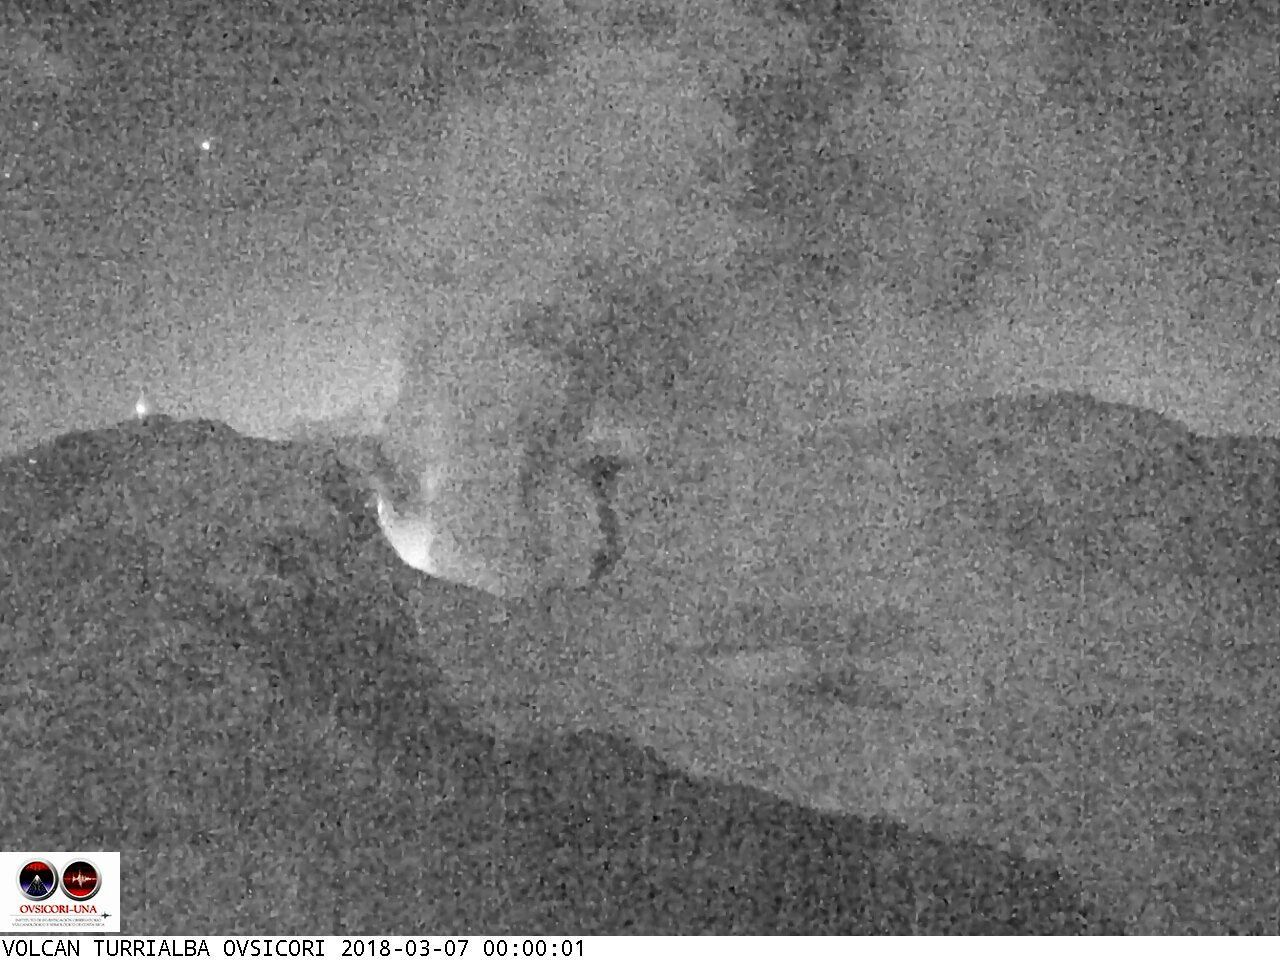 Turrialba - 07.03.2018 / respectively at 0h00, 0h44 and 1h00 - webcam Ovsicori